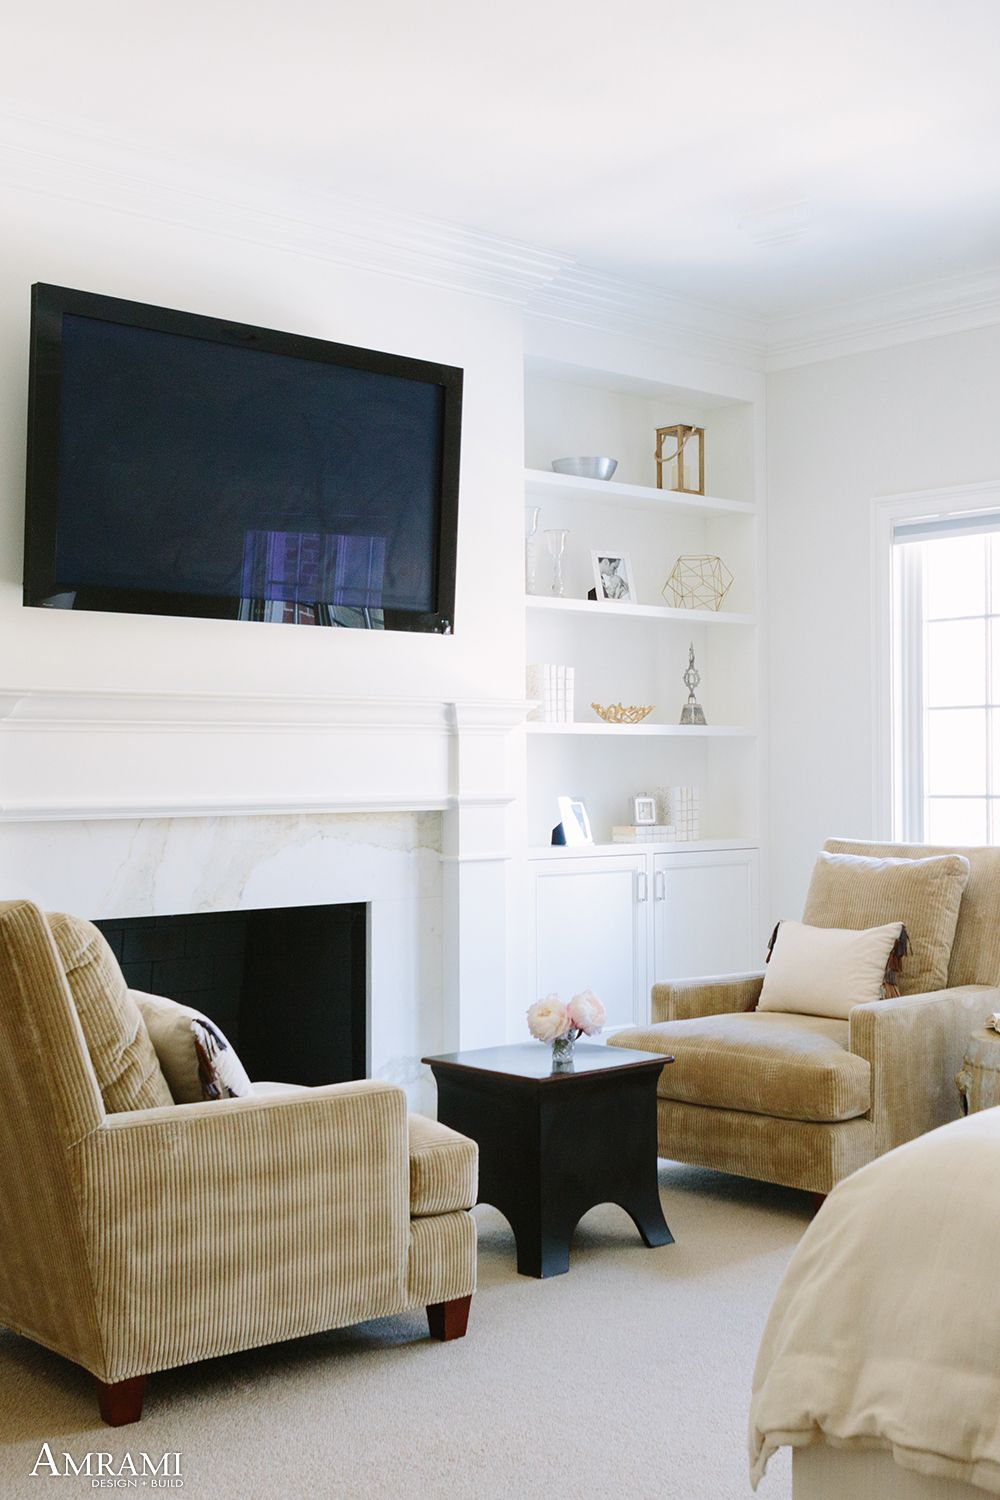 About Us in 2020 (With images) Tv over fireplace